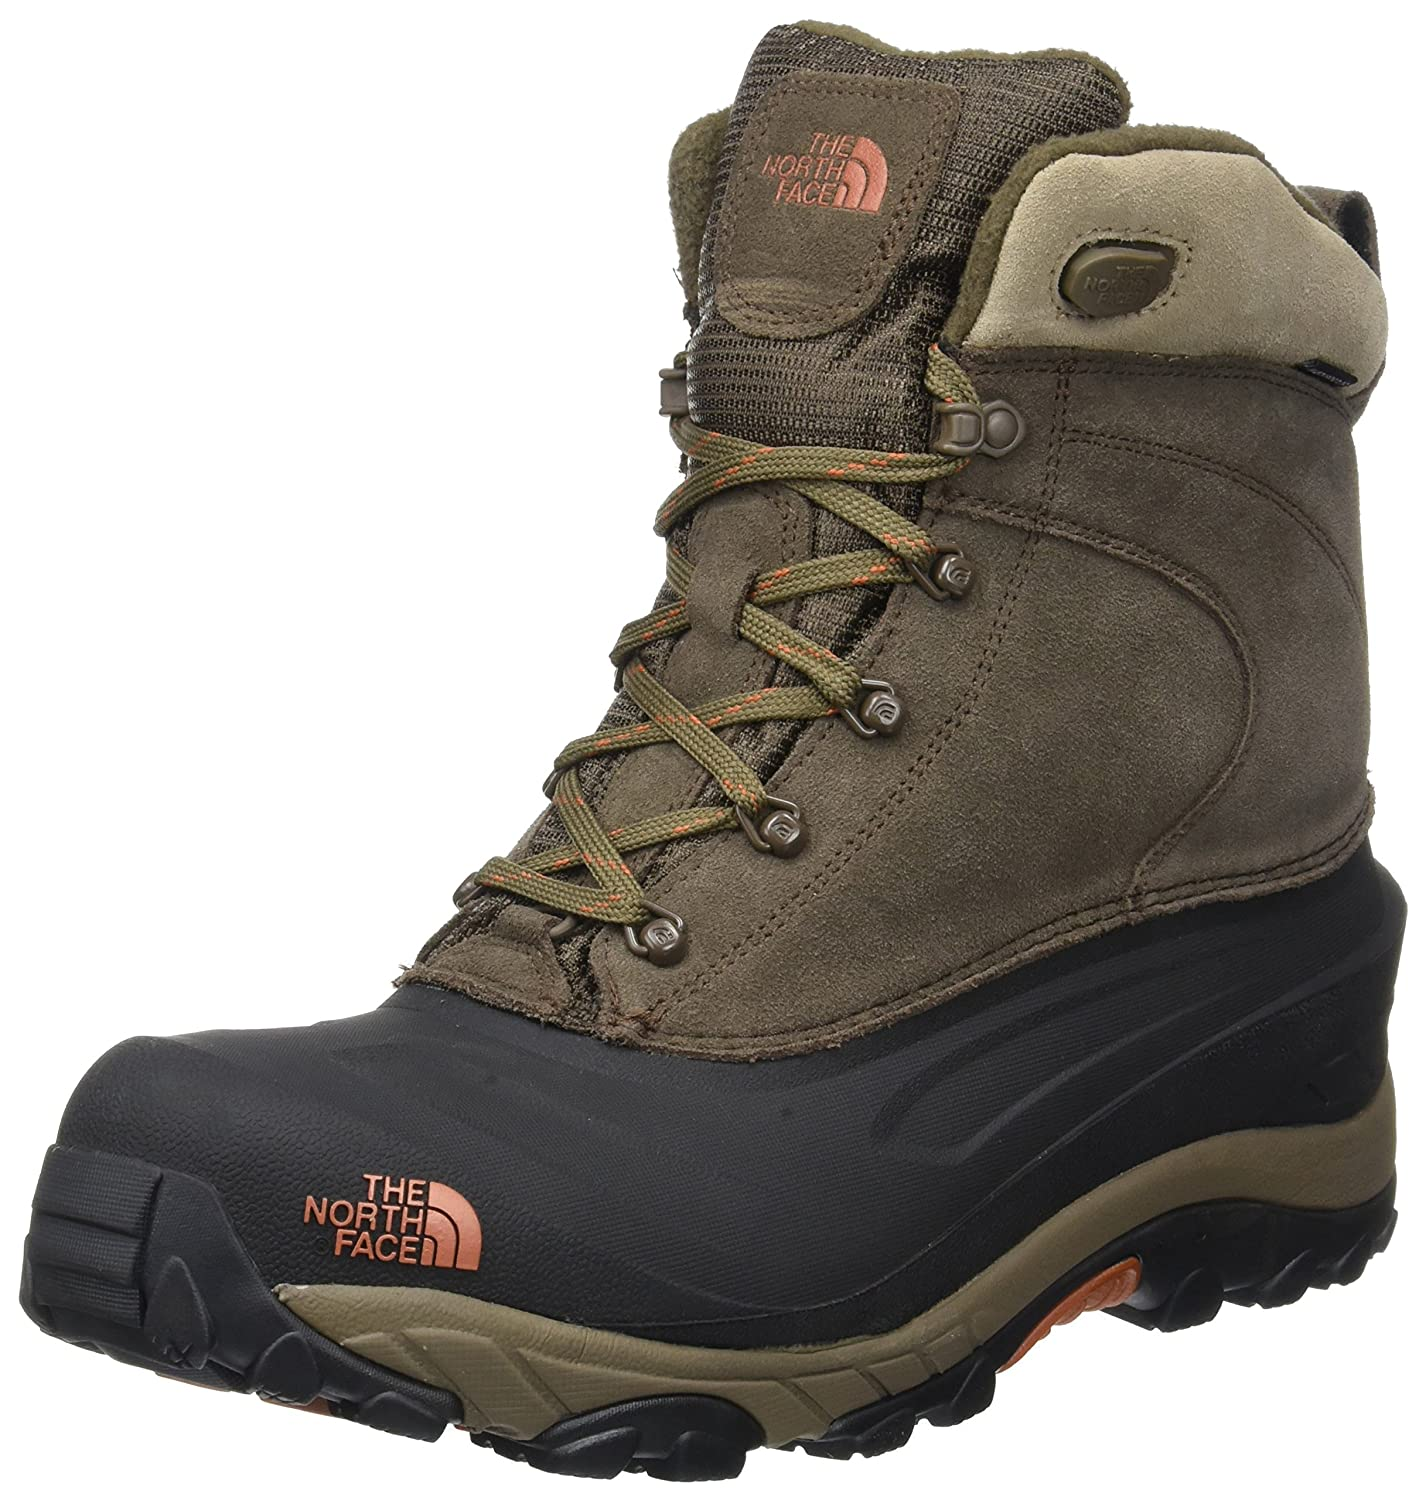 The North Face M Chilkat III, Botas de Senderismo para Hombre